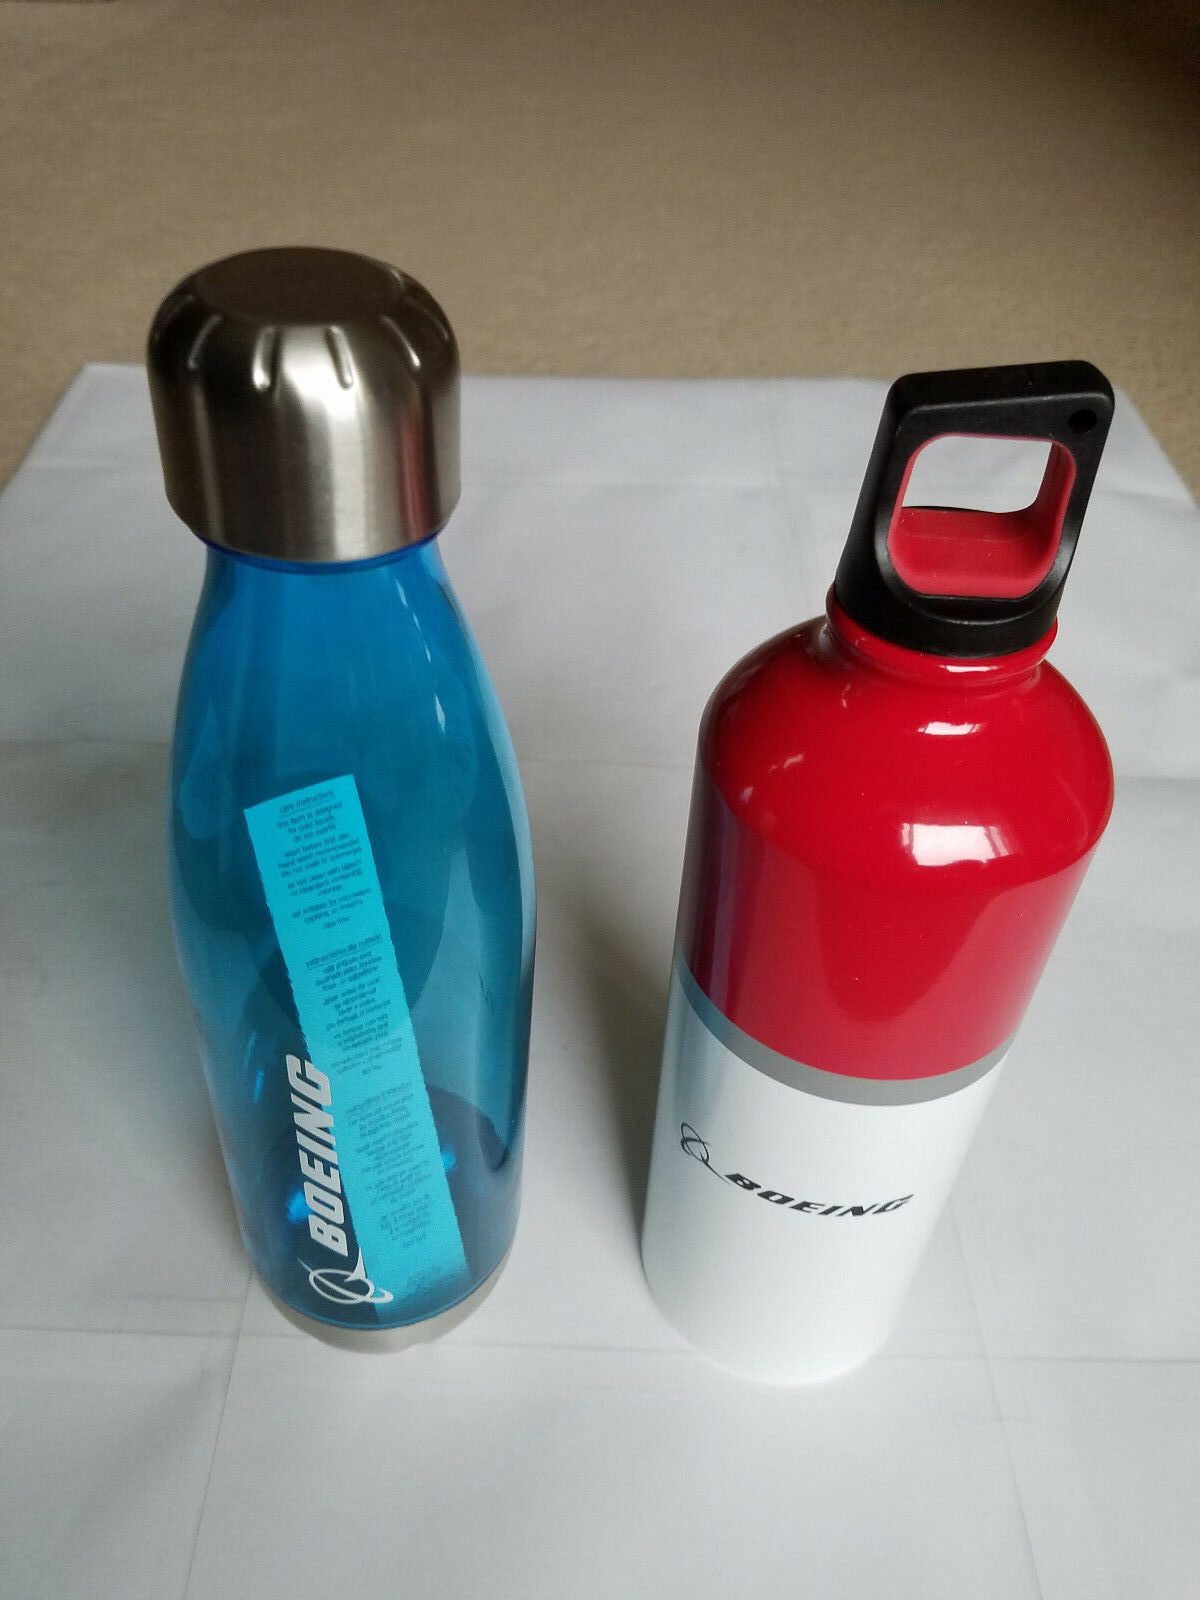 2 Boeing water bottles - one stainless steel and one plastic